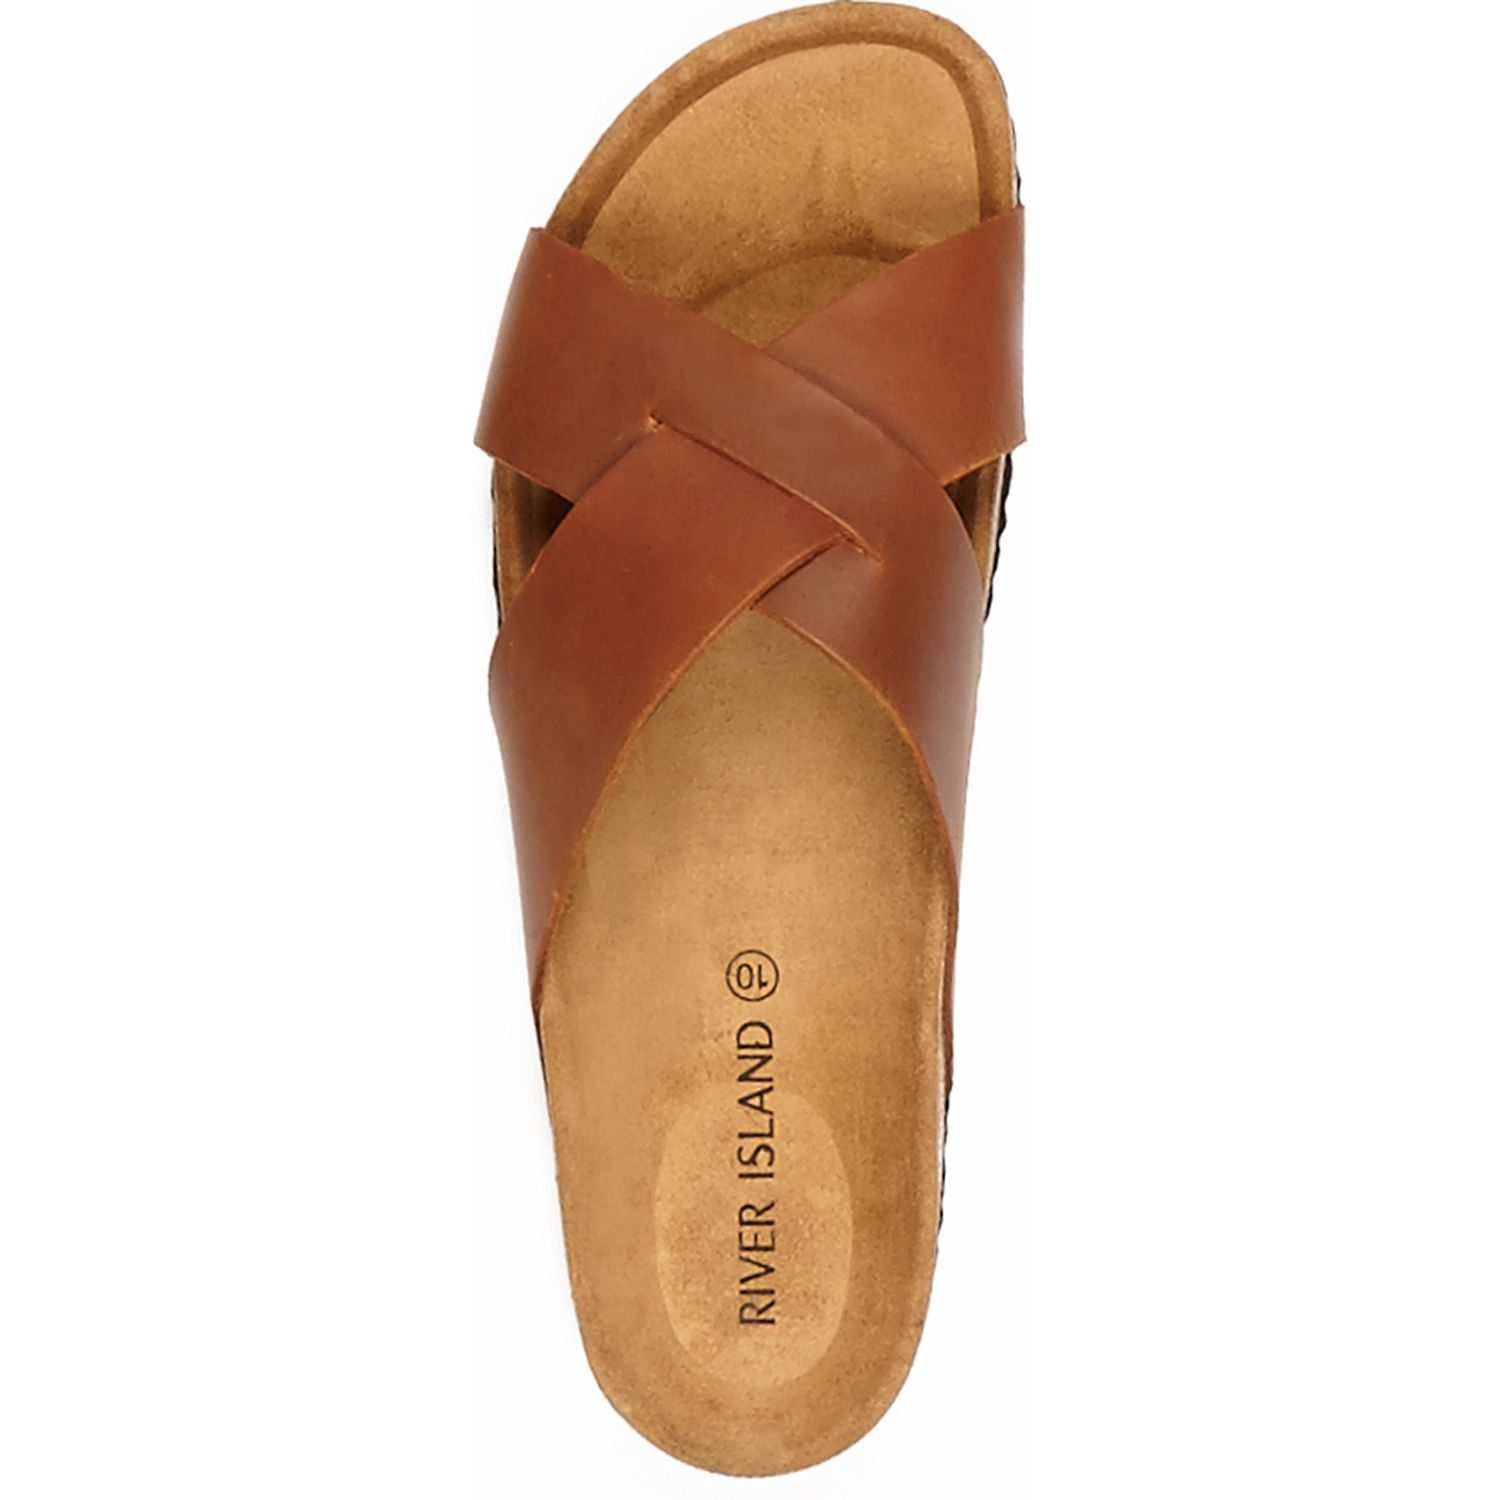 5db2aa19d5d97 River Island Brown Leather Cross-strap Sandals in Brown for Men - Lyst